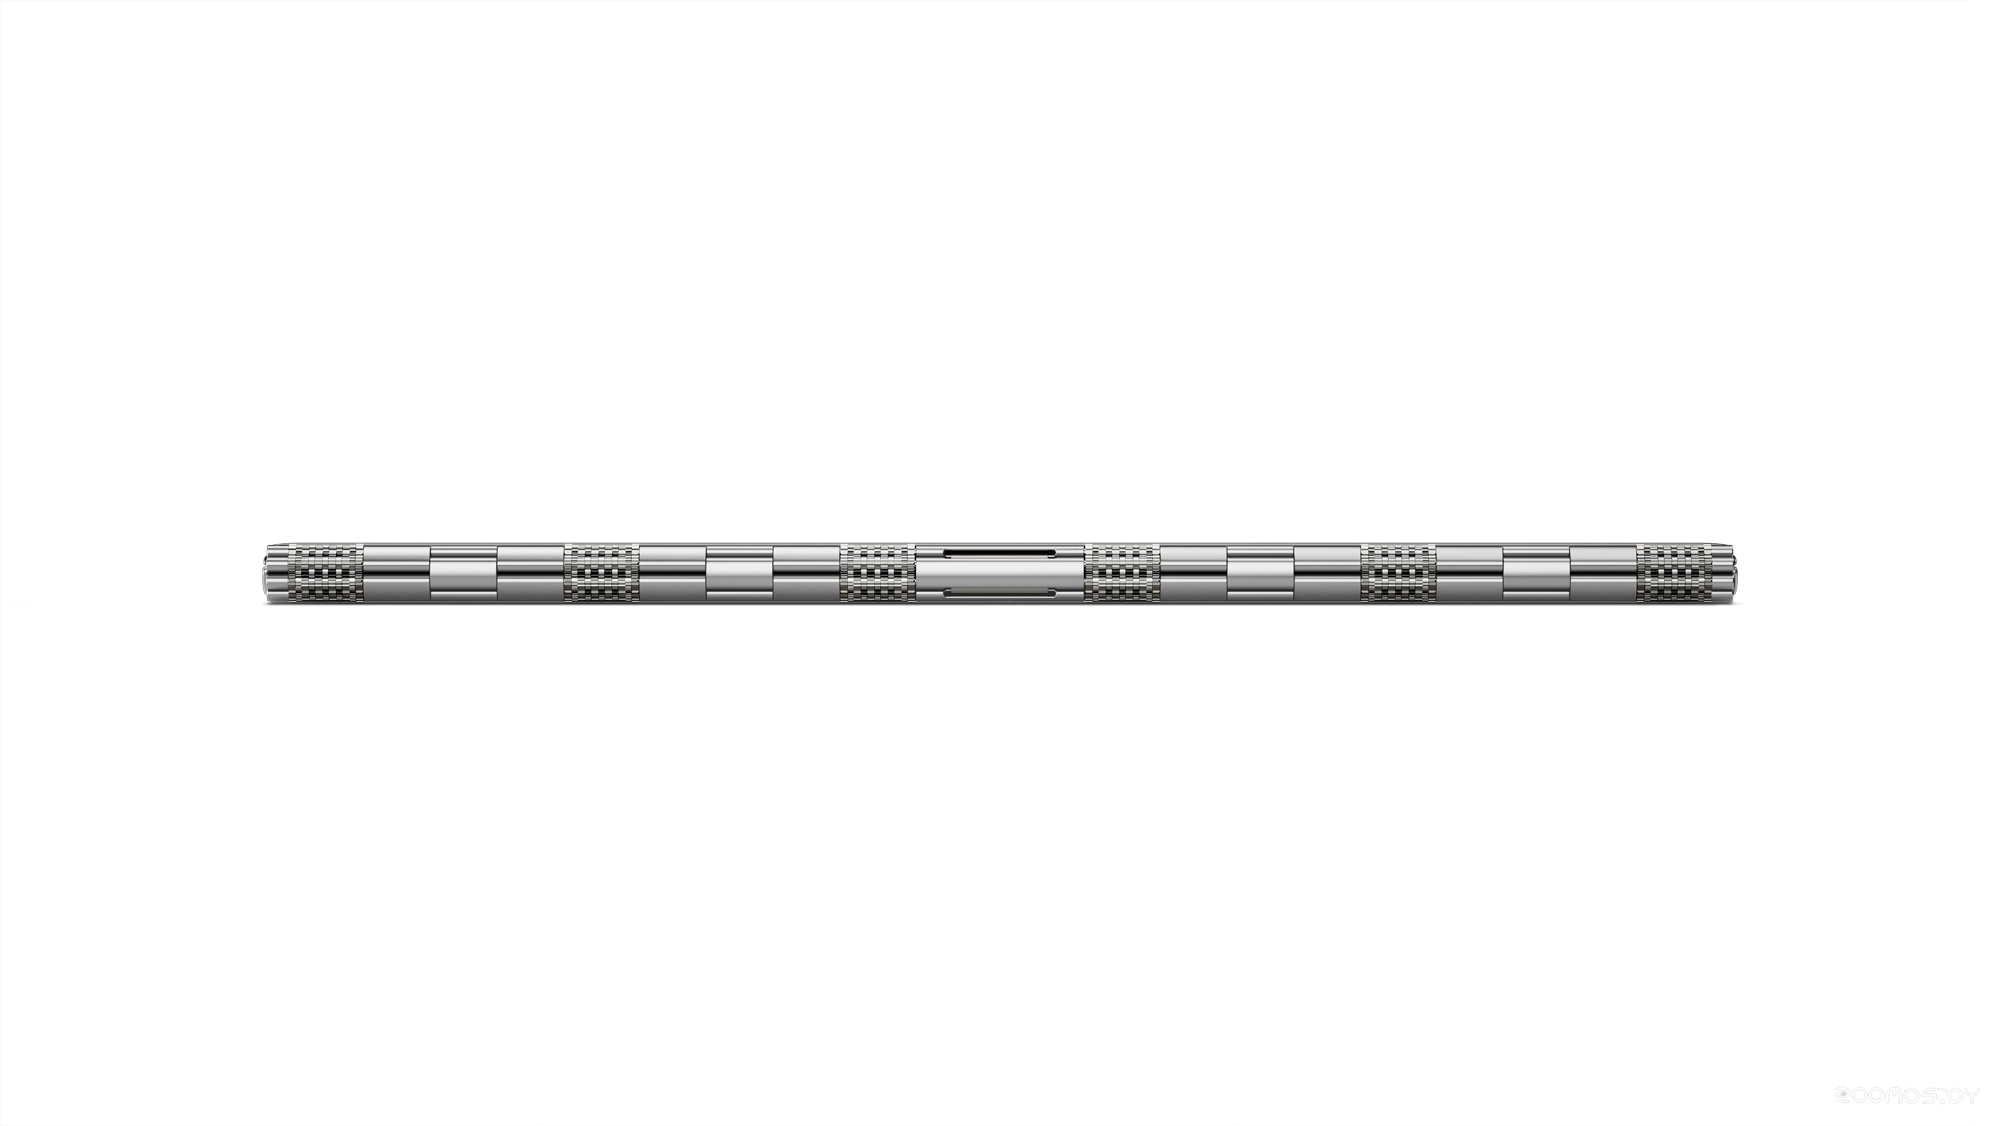 Ноутбук Lenovo Yoga 900s-12ISK (80ML005ERK)